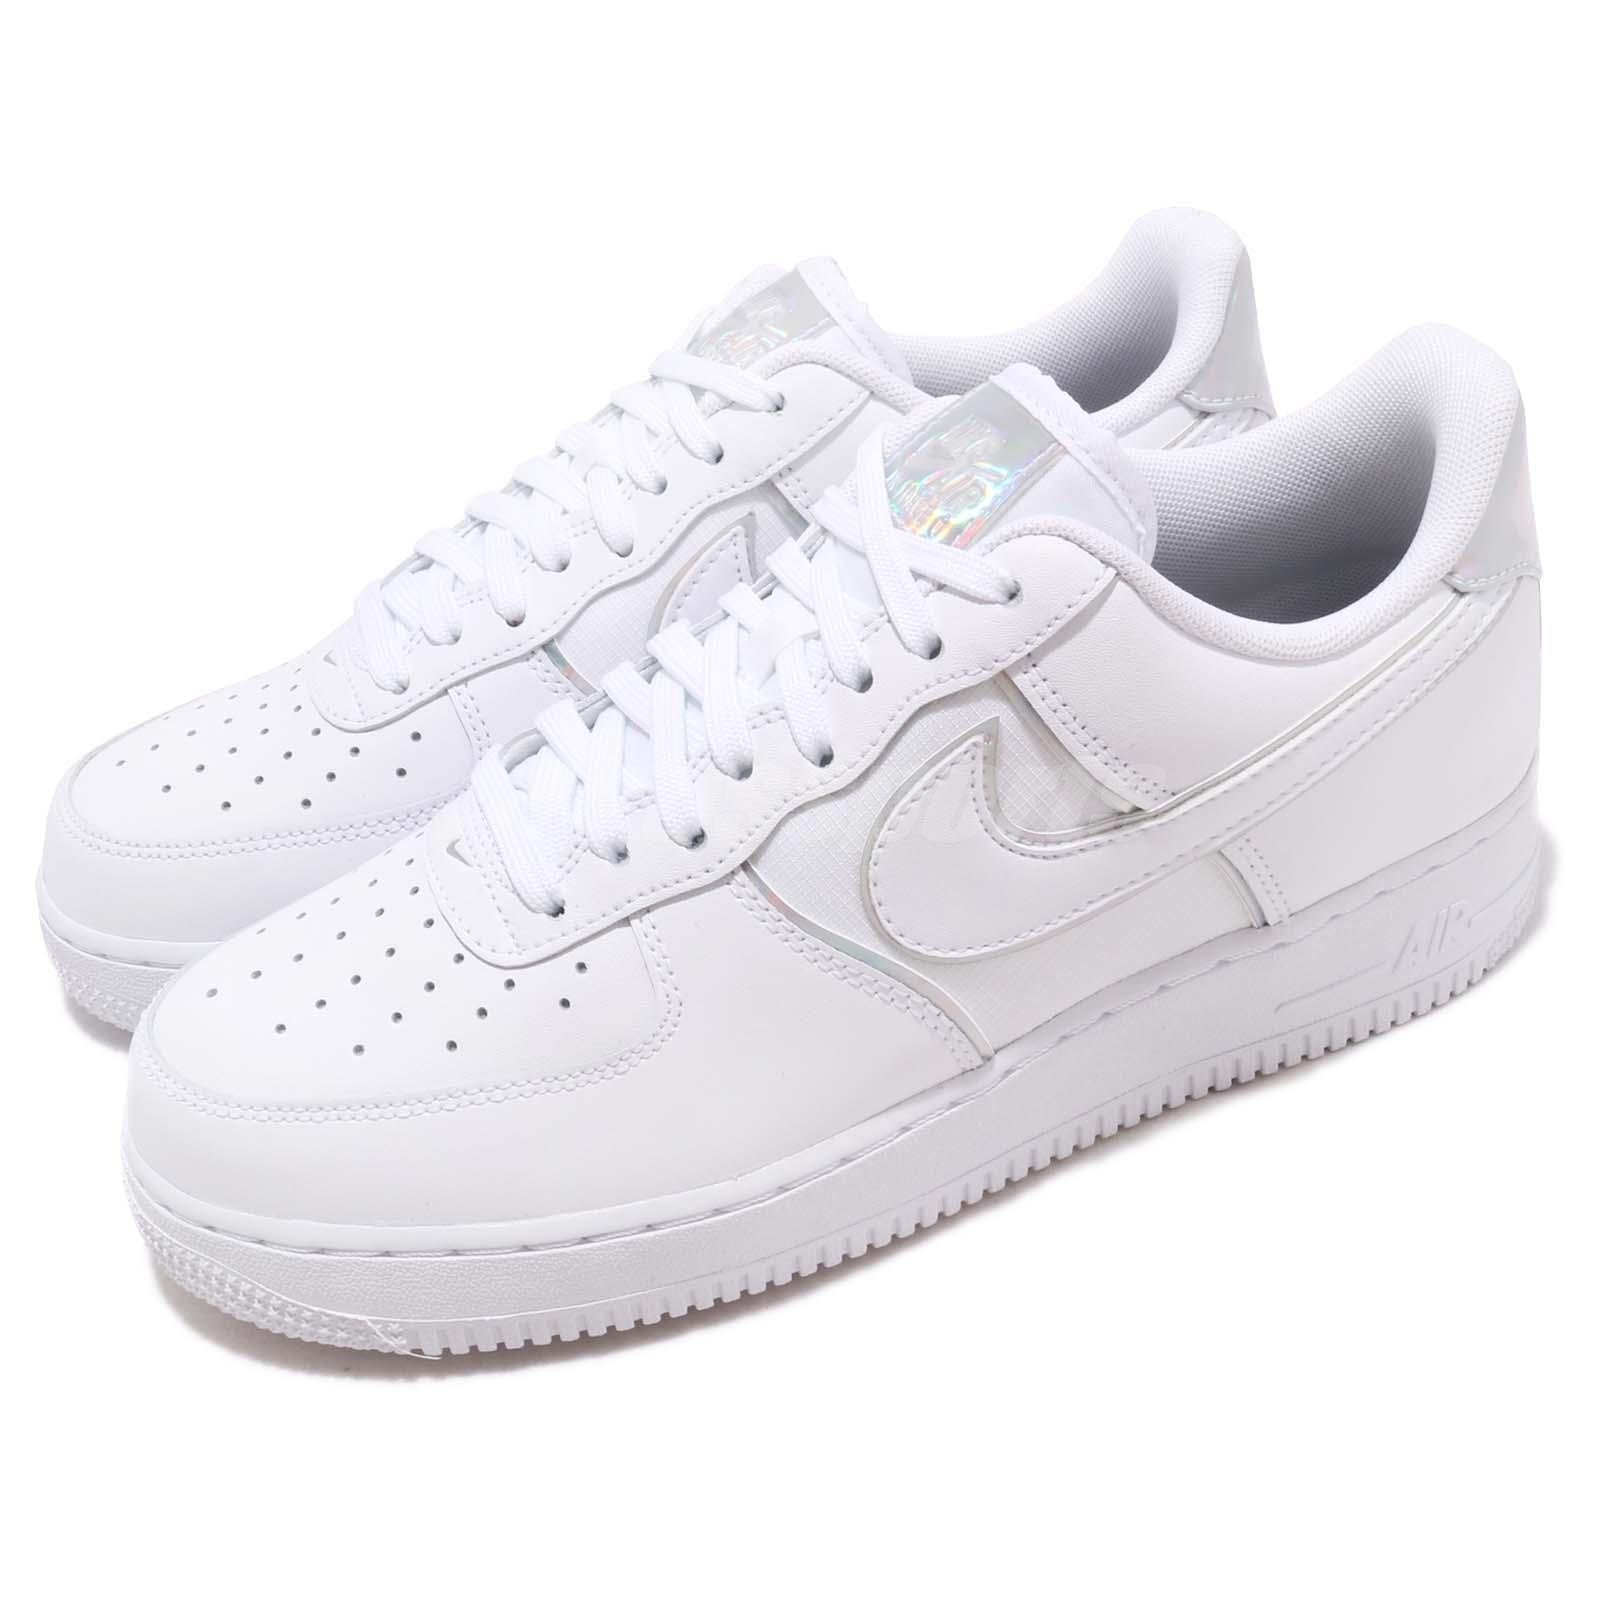 low priced 1cdee b9bbb Details about Nike Air Force 1 07 LV8 4 White Iridescent Men Casual Shoes  Sneakers AT6147-100